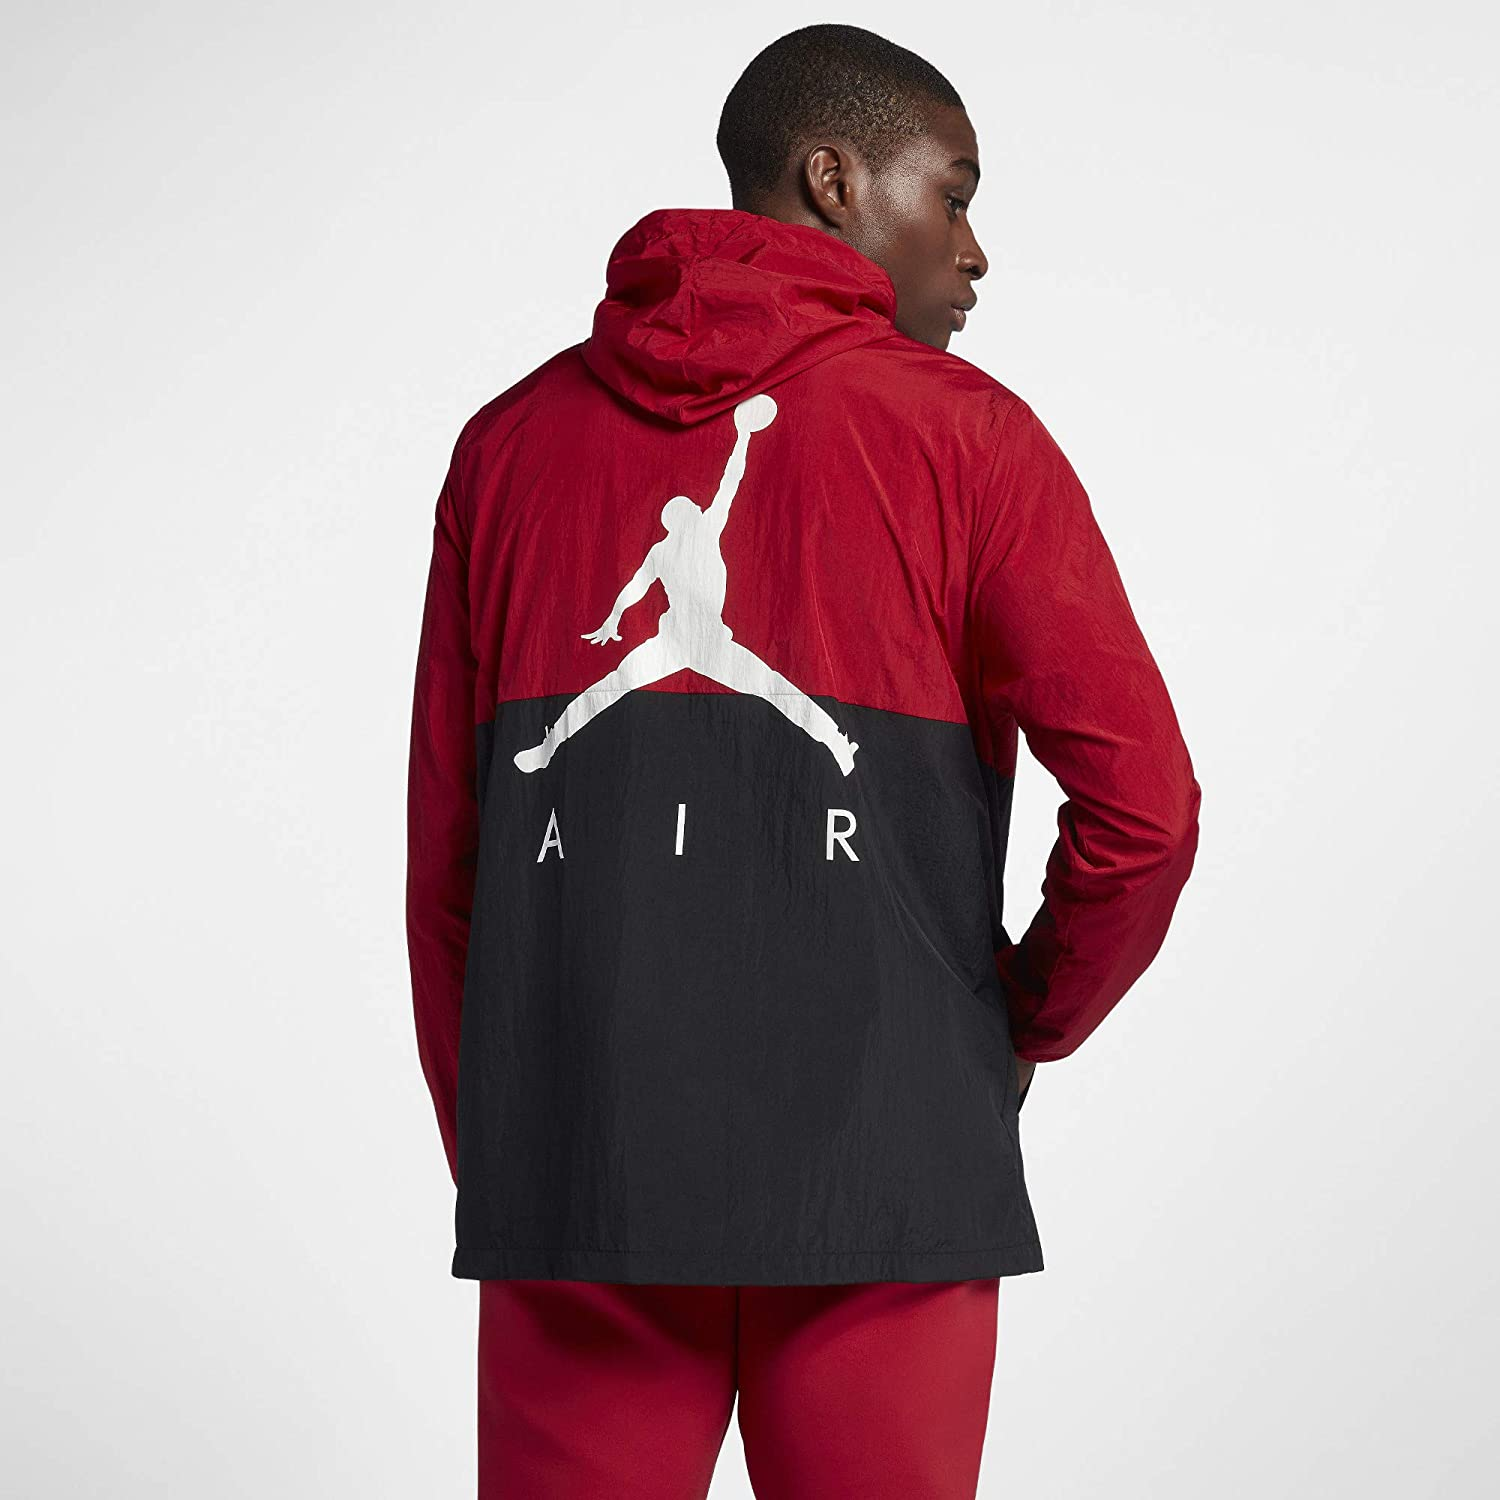 ace069b911cd61 Jordan Jumpman Air Windbreaker  Amazon.ca  Clothing   Accessories